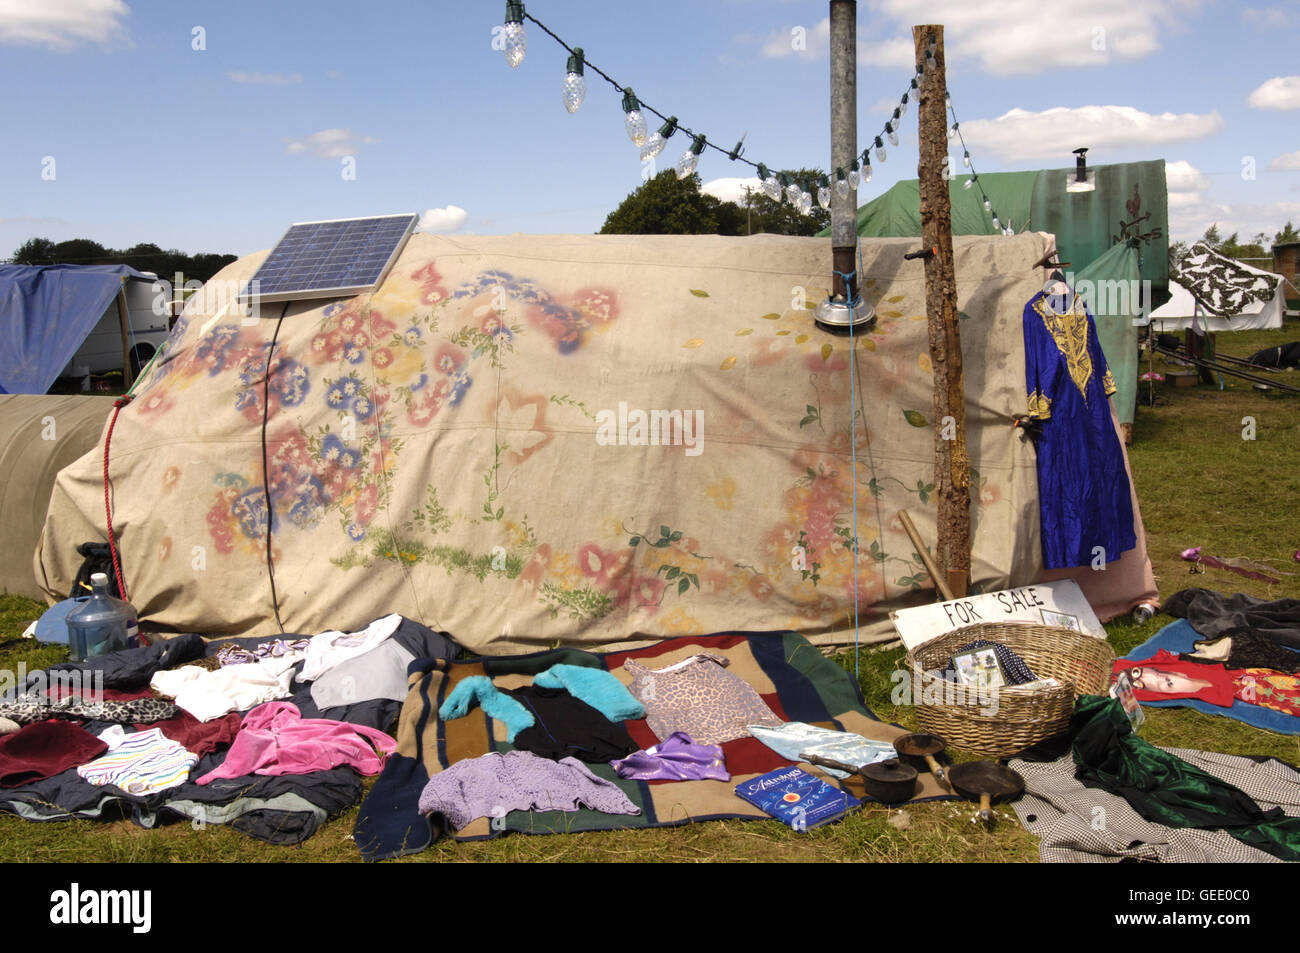 Environmentally conscious festaival goers sell their goods around their solar powered temporary home, Big Green - Stock Image